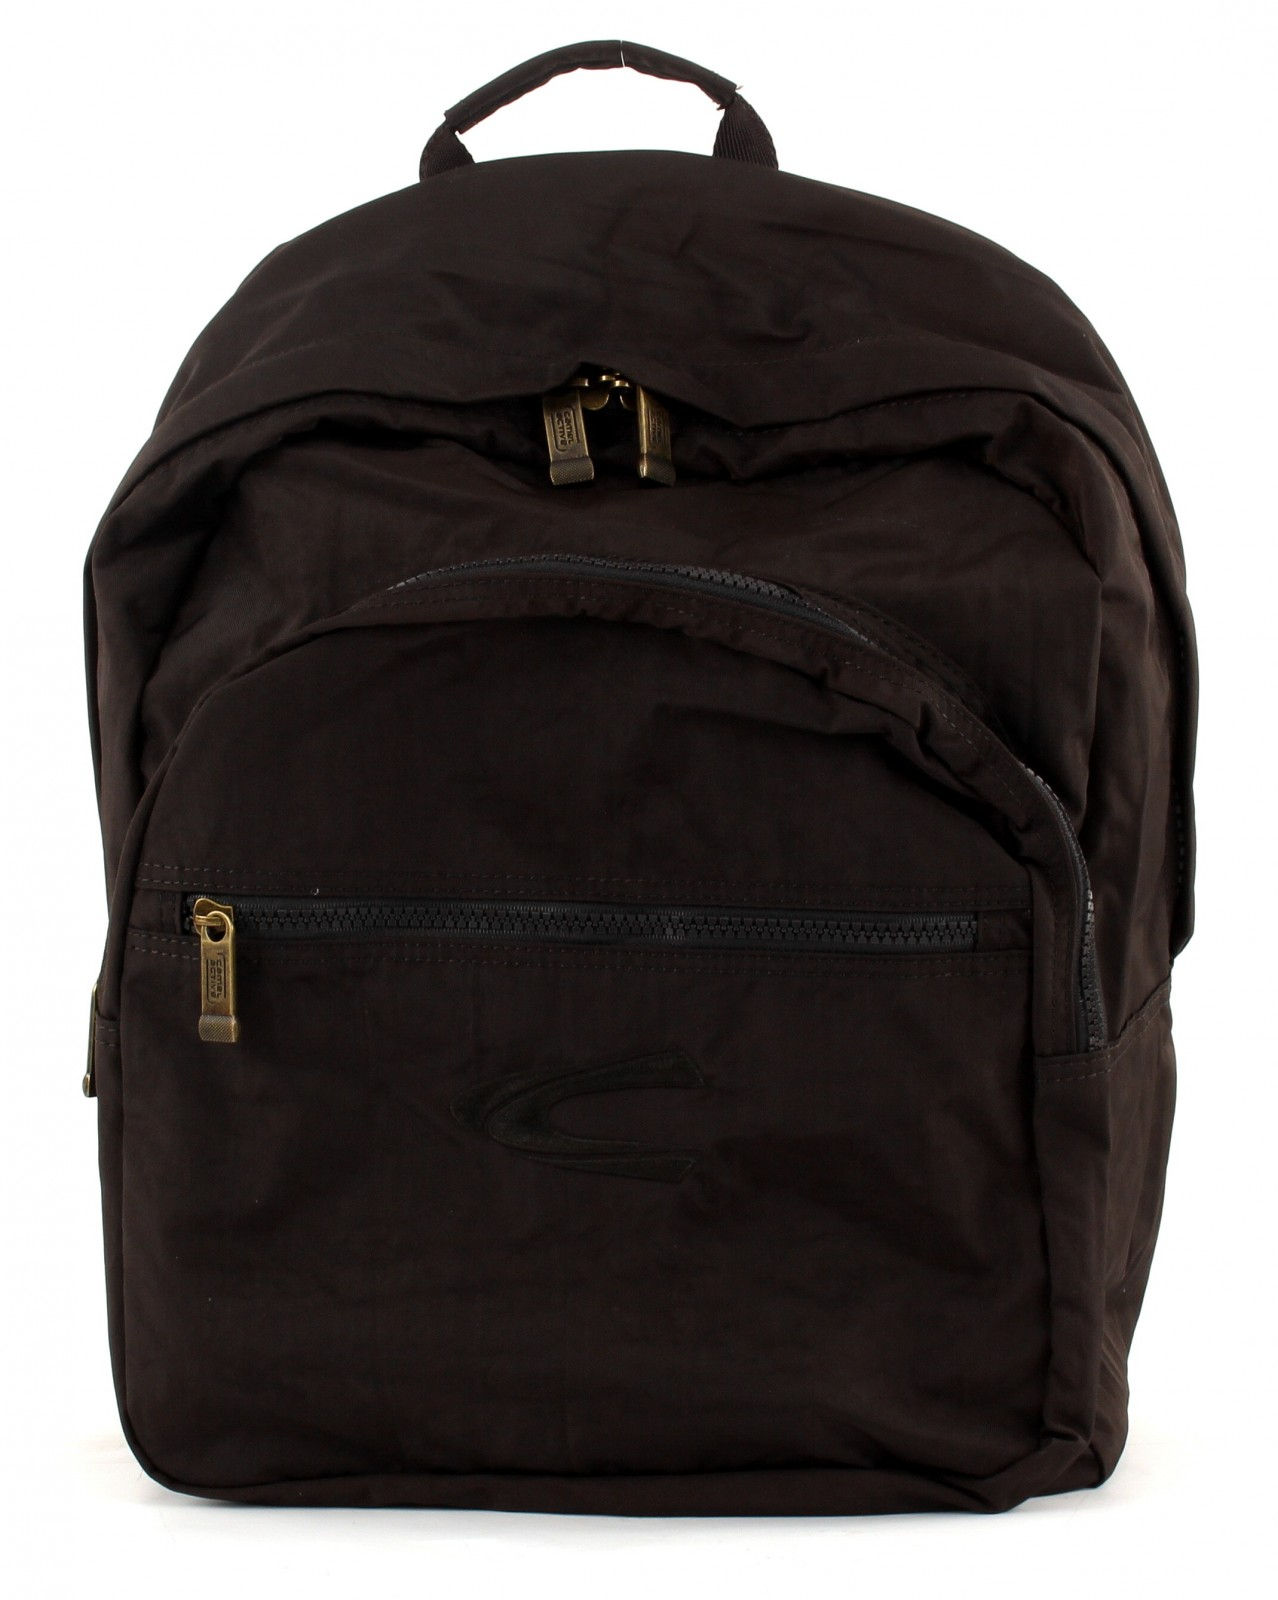 3b92af0eff8 Camel Active Backpack Journey Brown